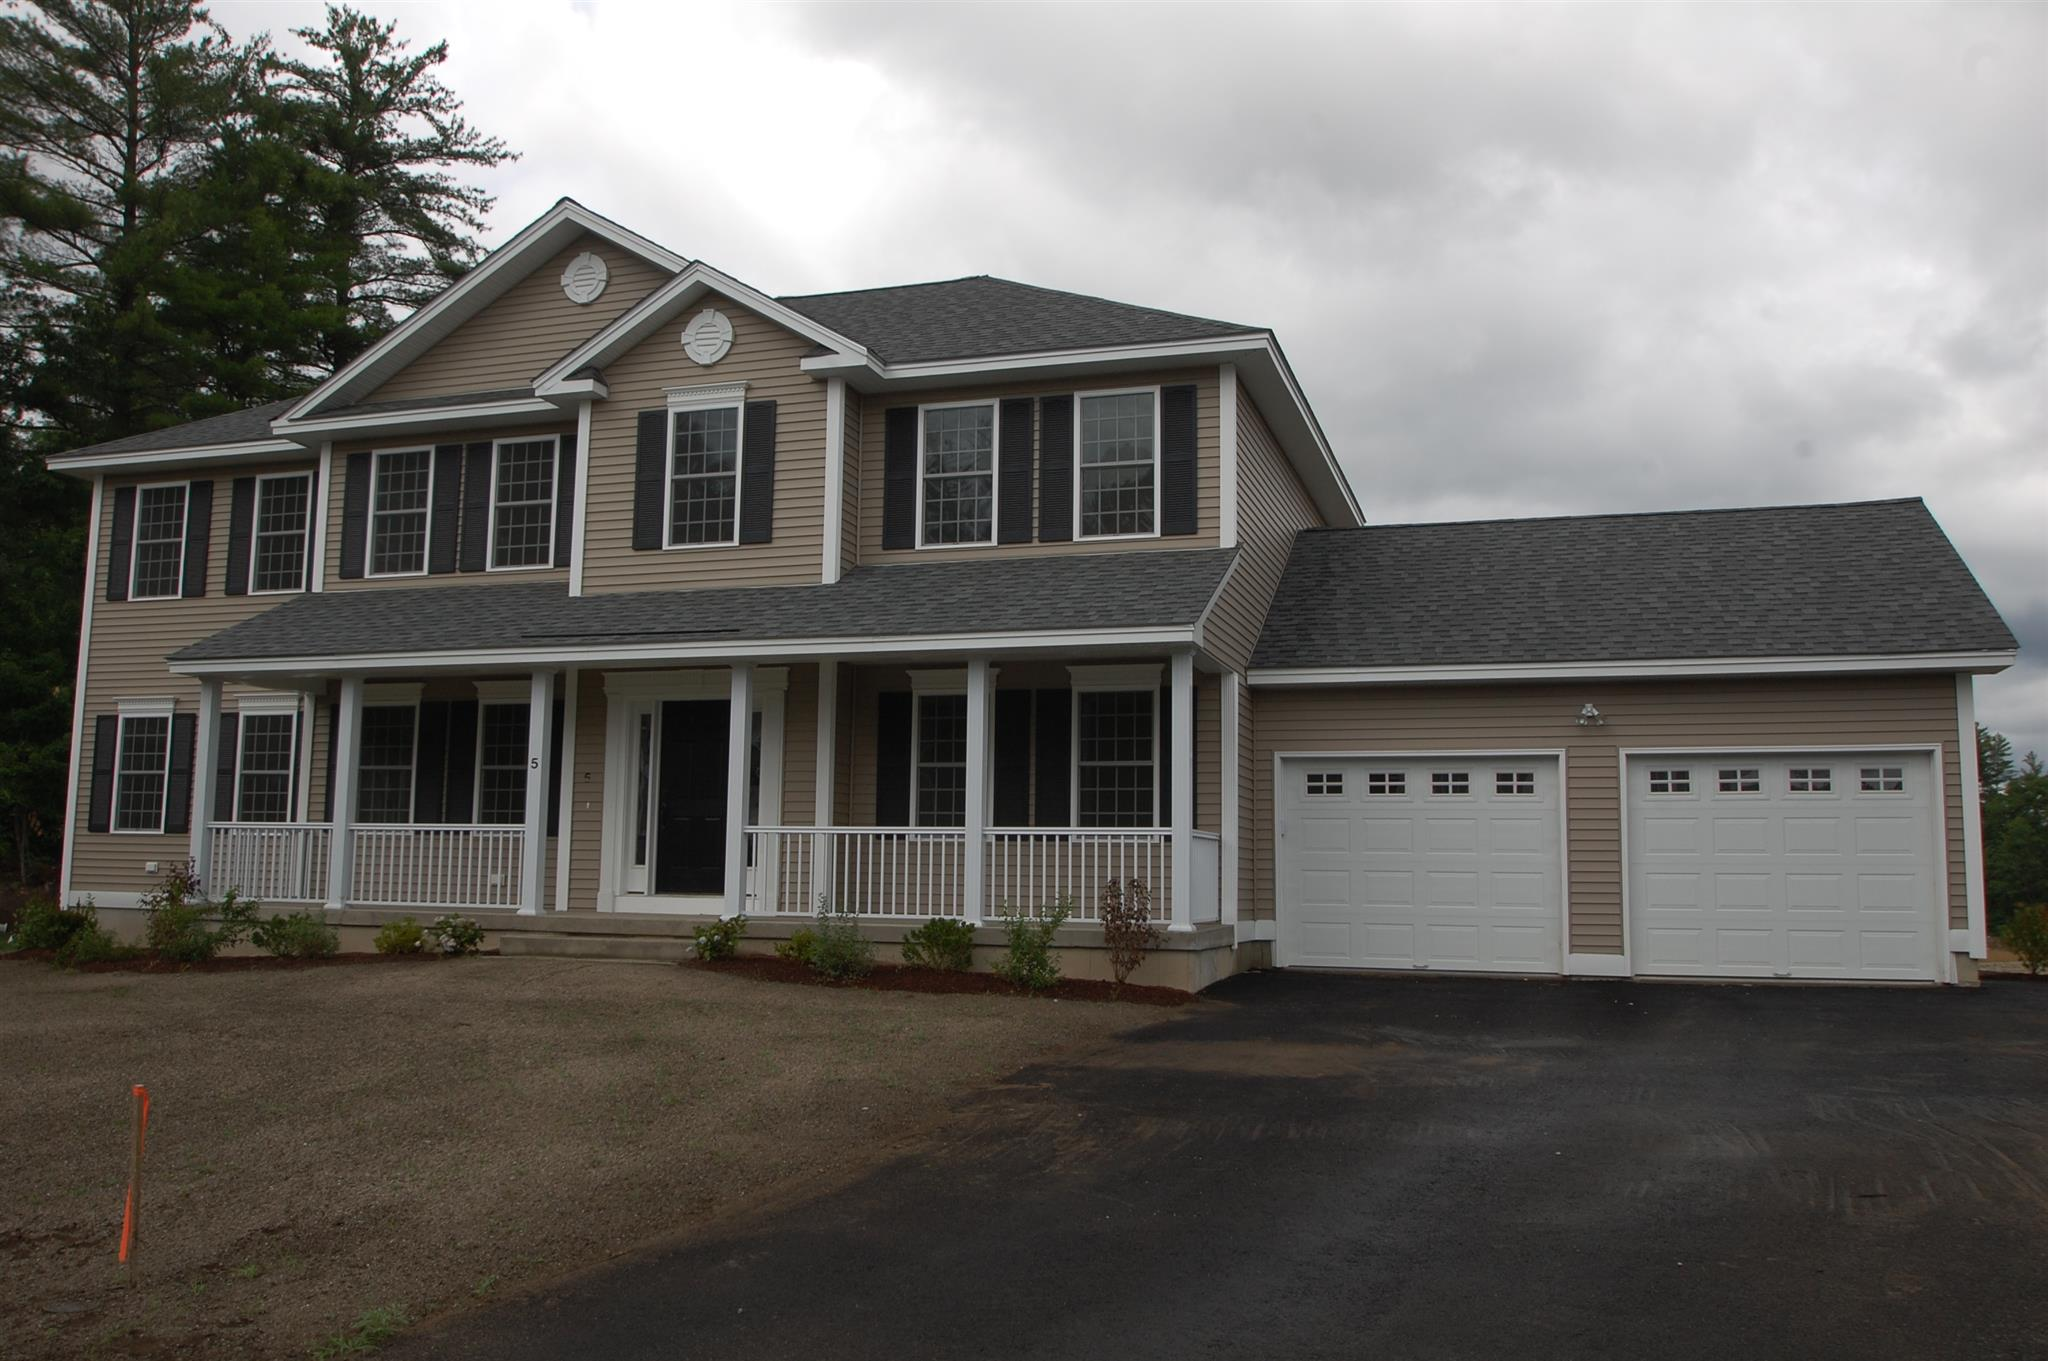 Photo of 5 Baldwin Court Merrimack NH 03054